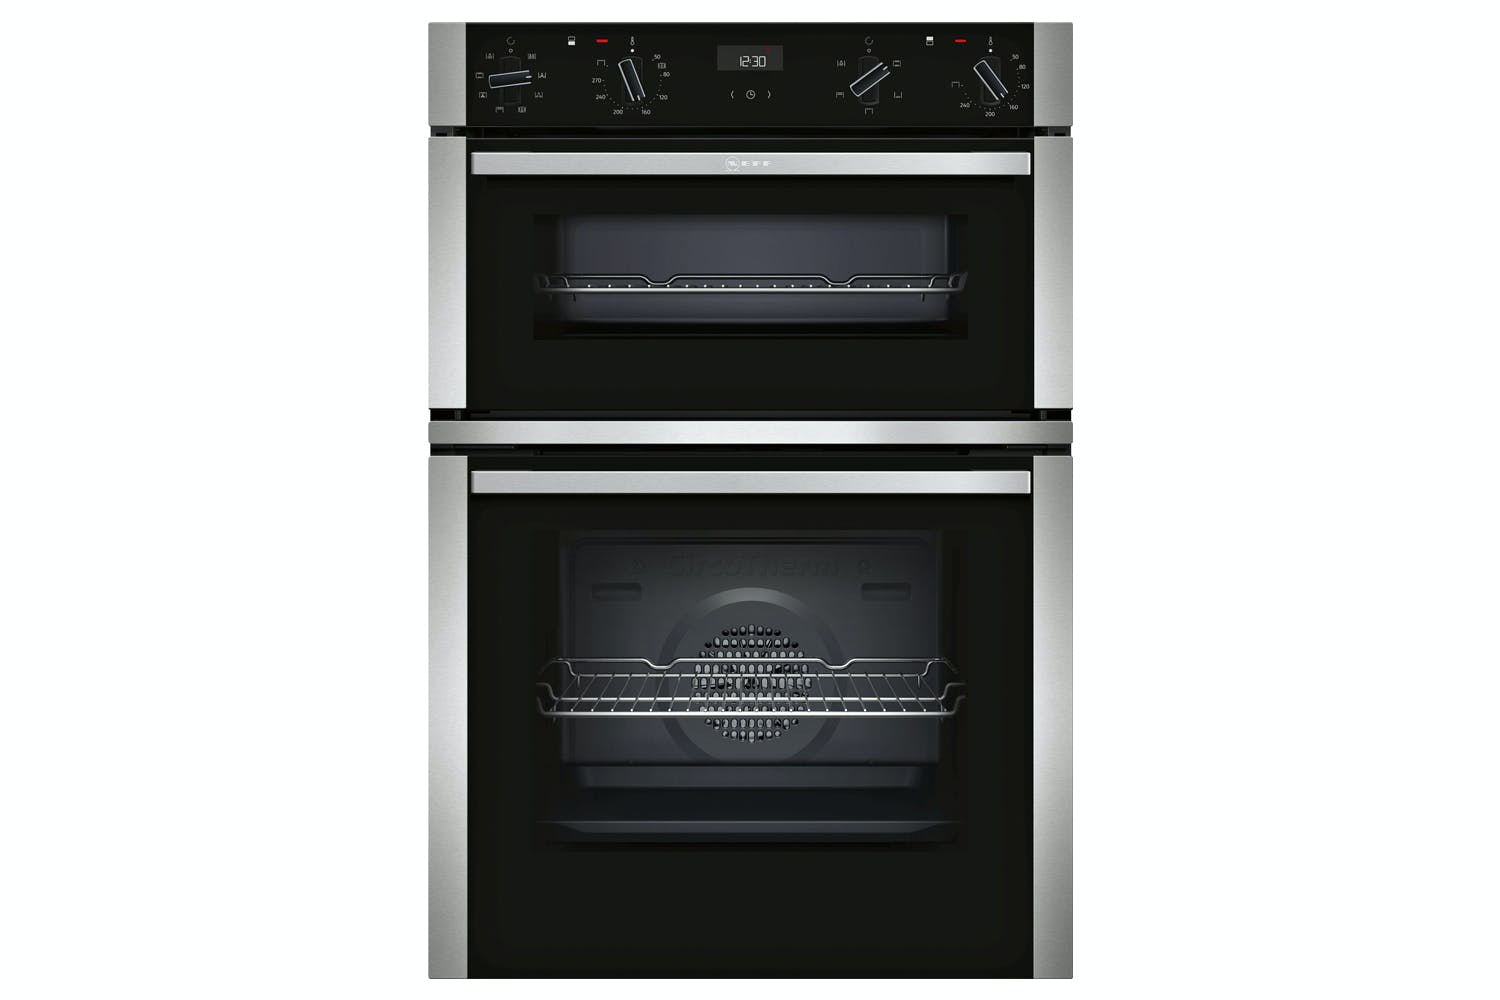 Neff Built In Electric Double Oven U1ace2hn0b Ireland